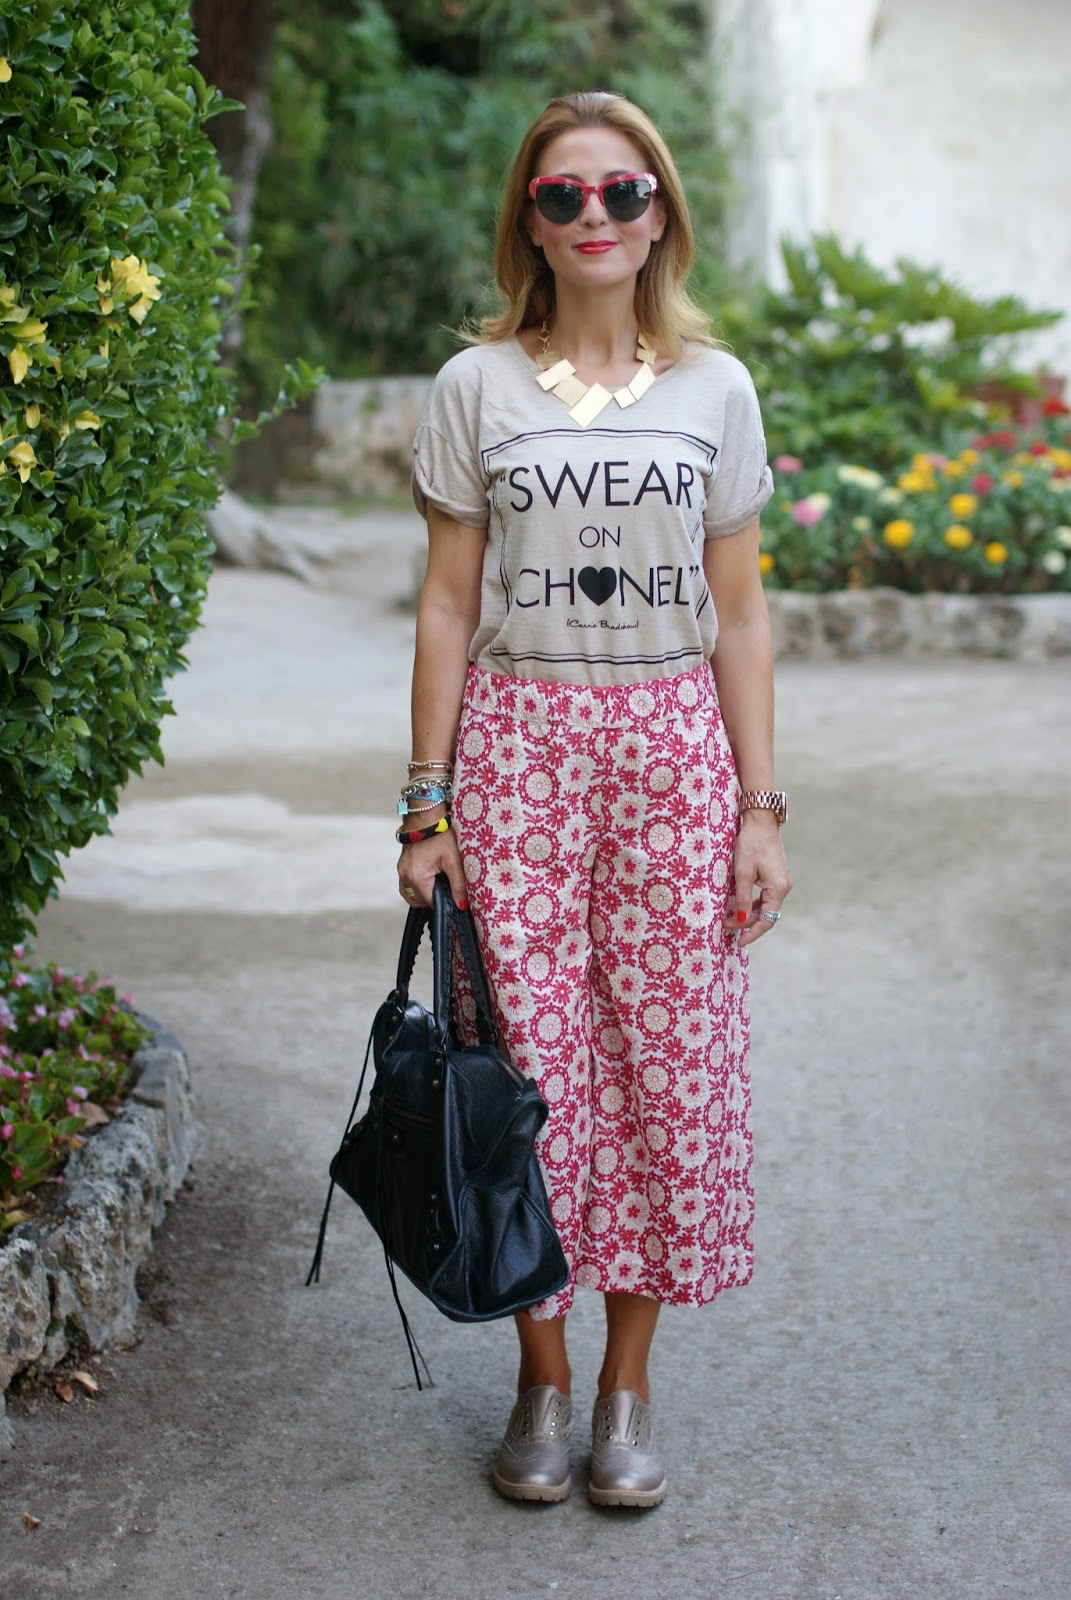 Swear on Chanel t-shirt, platinum oxfords, Spitfire sunglasses, Balenciaga work bag, crochet culottes pants, Fashion and Cookies, fashion blogger